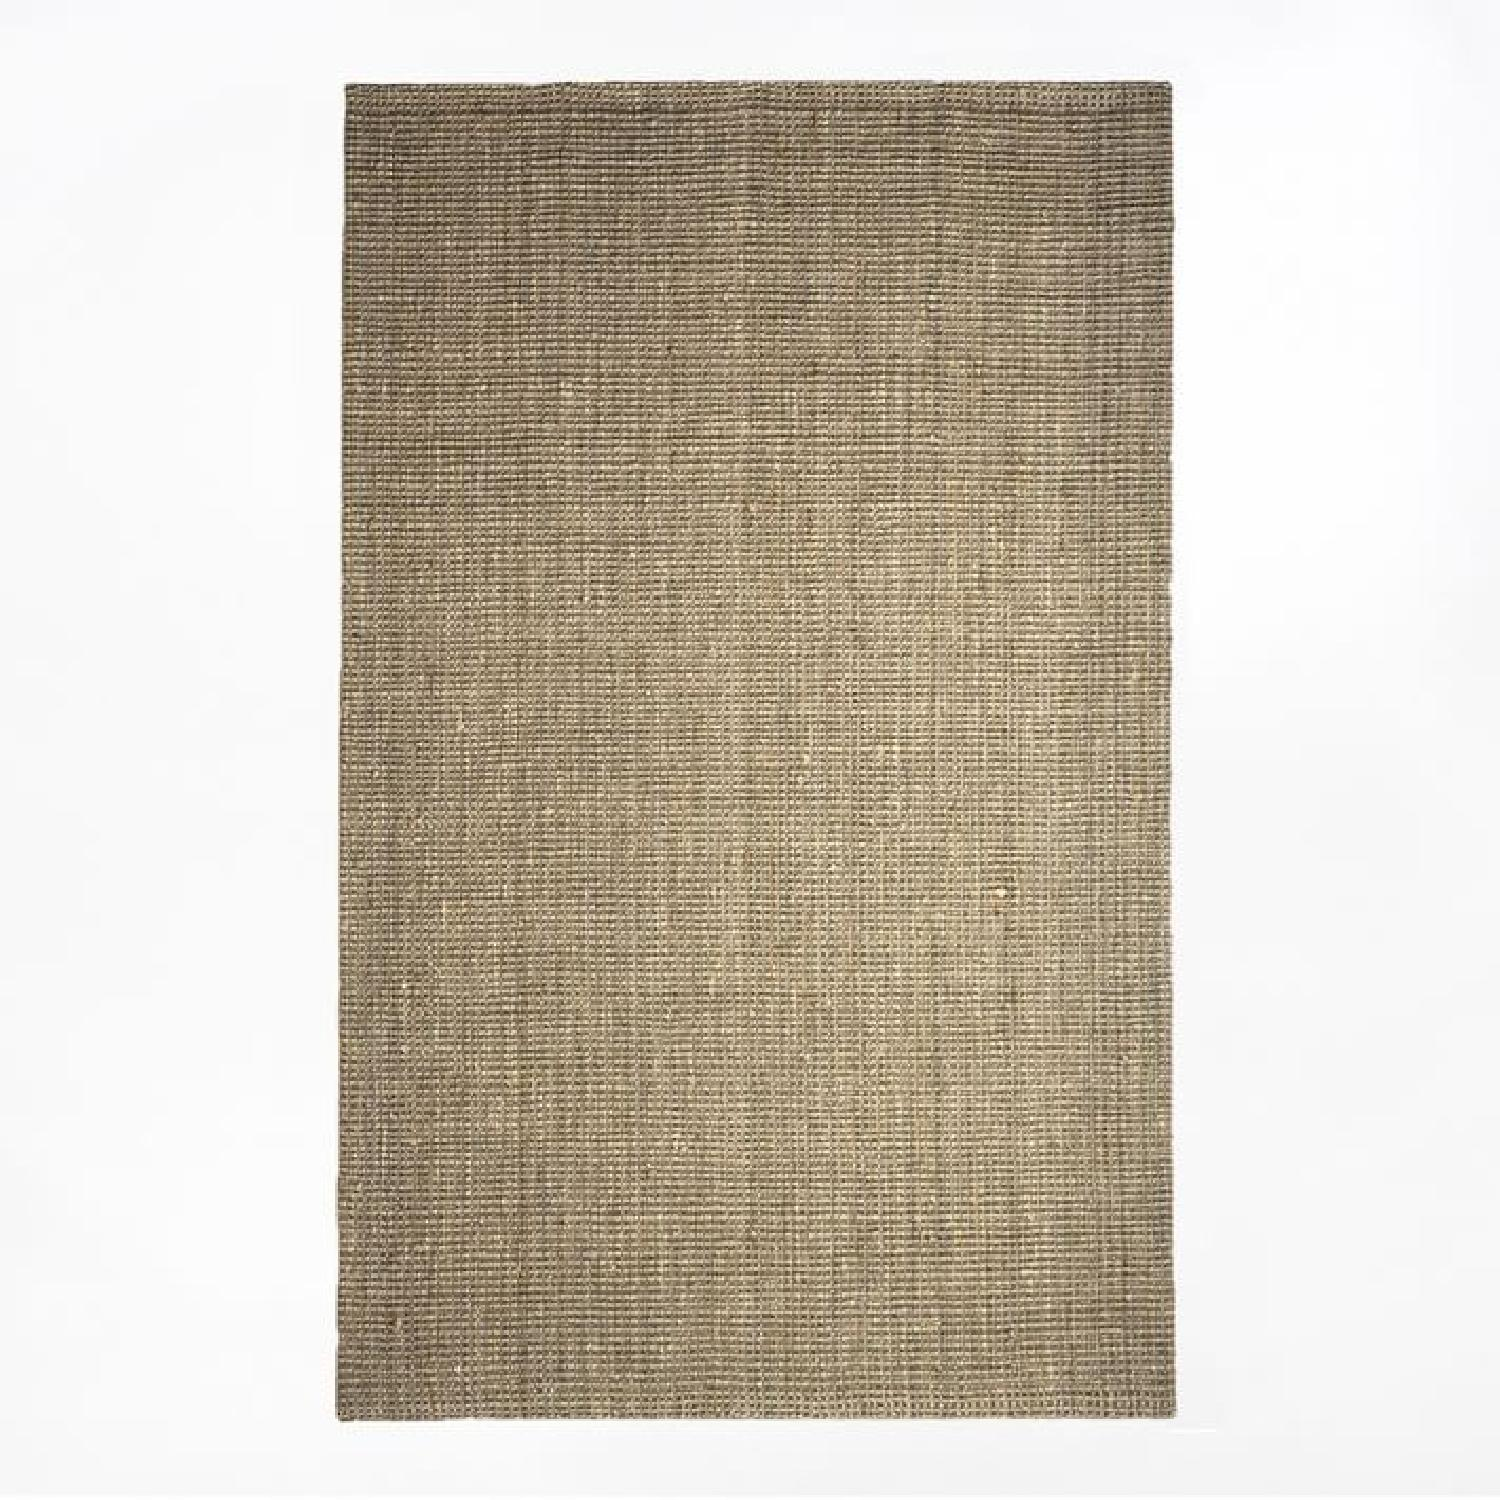 West Elm Jute Boucle Rug in Flax-4